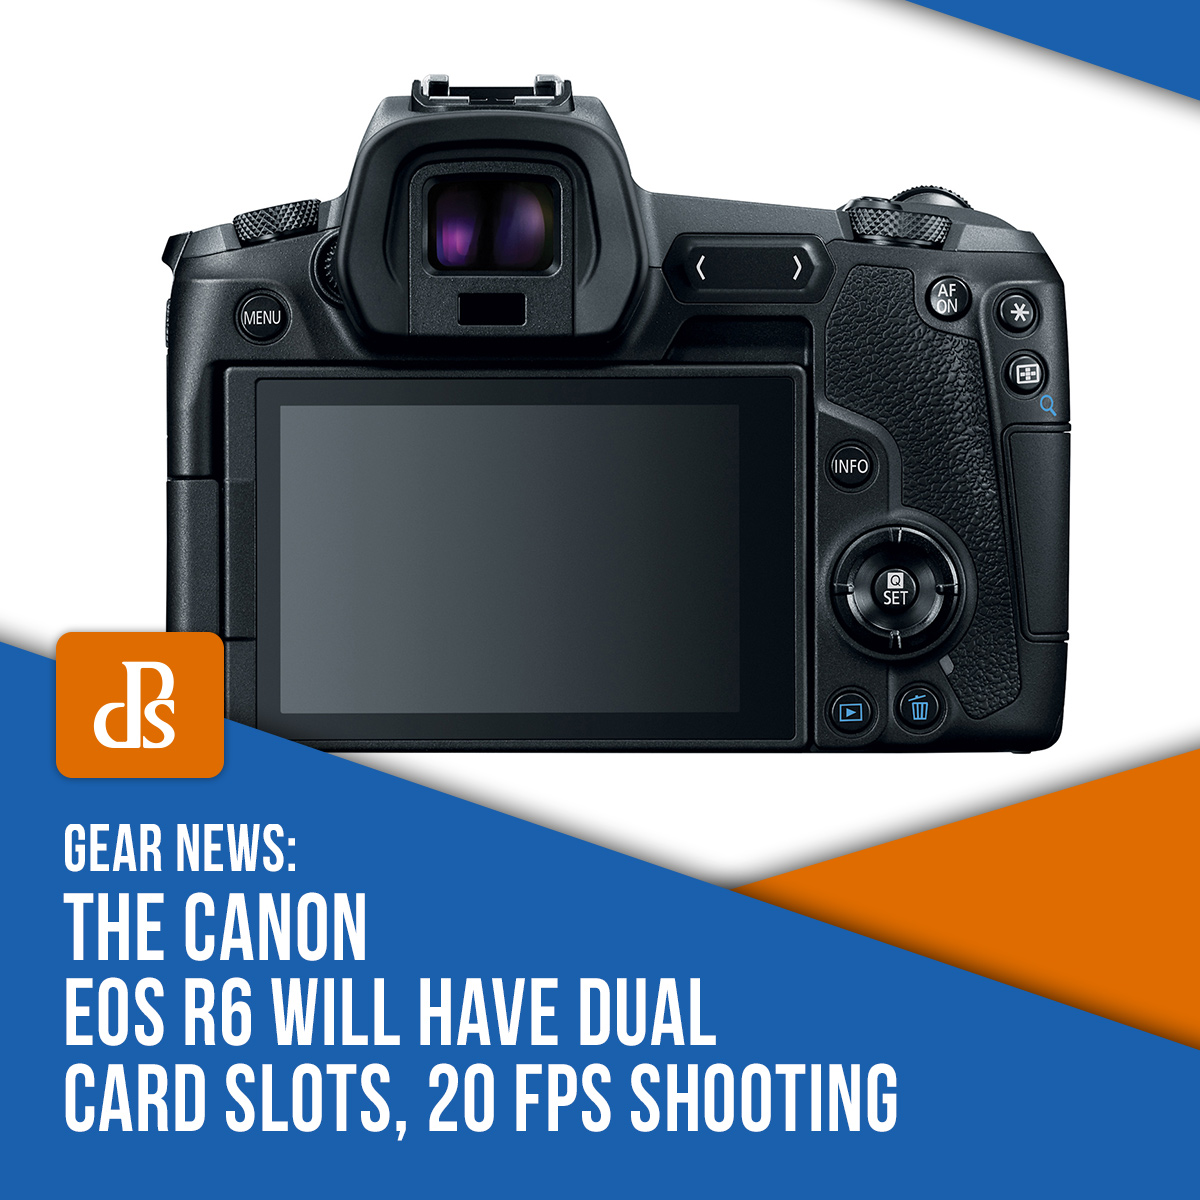 https://i1.wp.com/digital-photography-school.com/wp-content/uploads/2020/03/dps-gear-news-canon-eos-r6-rumors.jpg?ssl=1